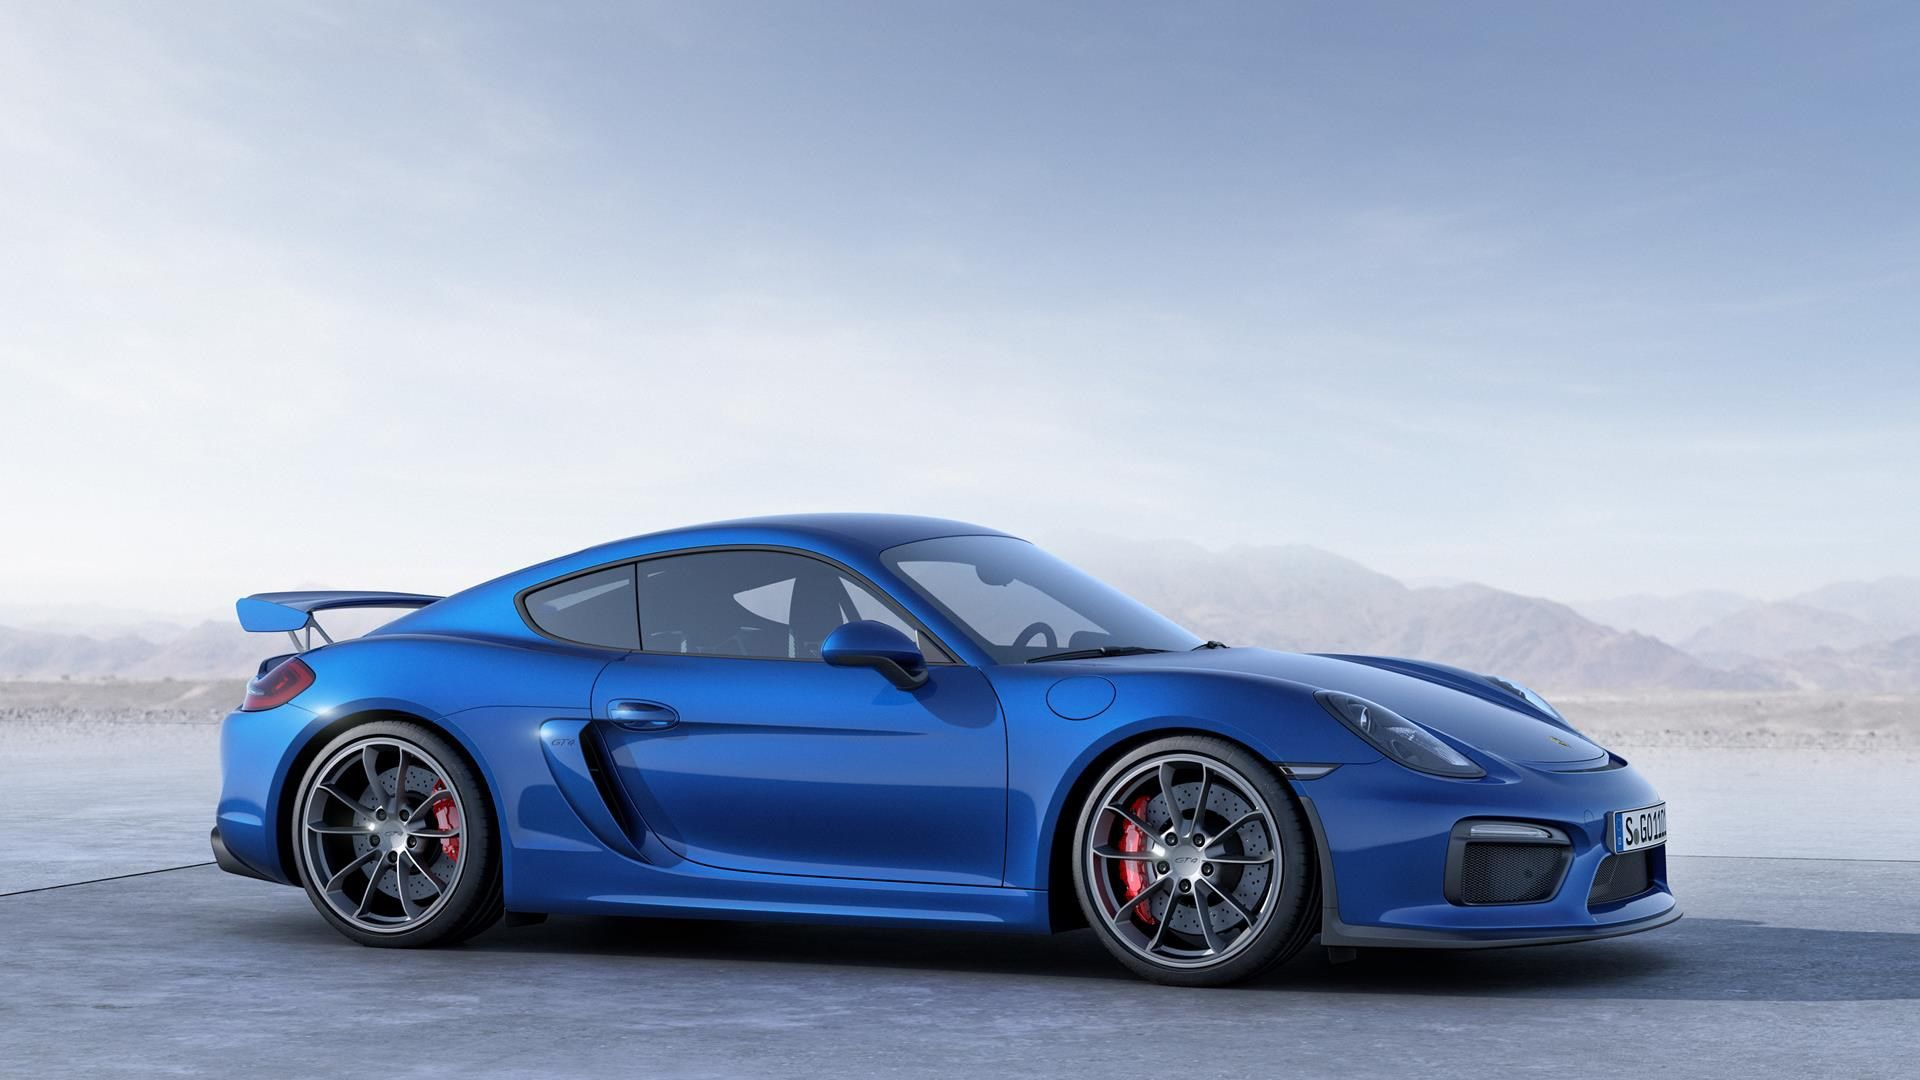 Porsche Cayman Gt4 Wallpaper Pack 1080p Hd (Edwina Sheldon